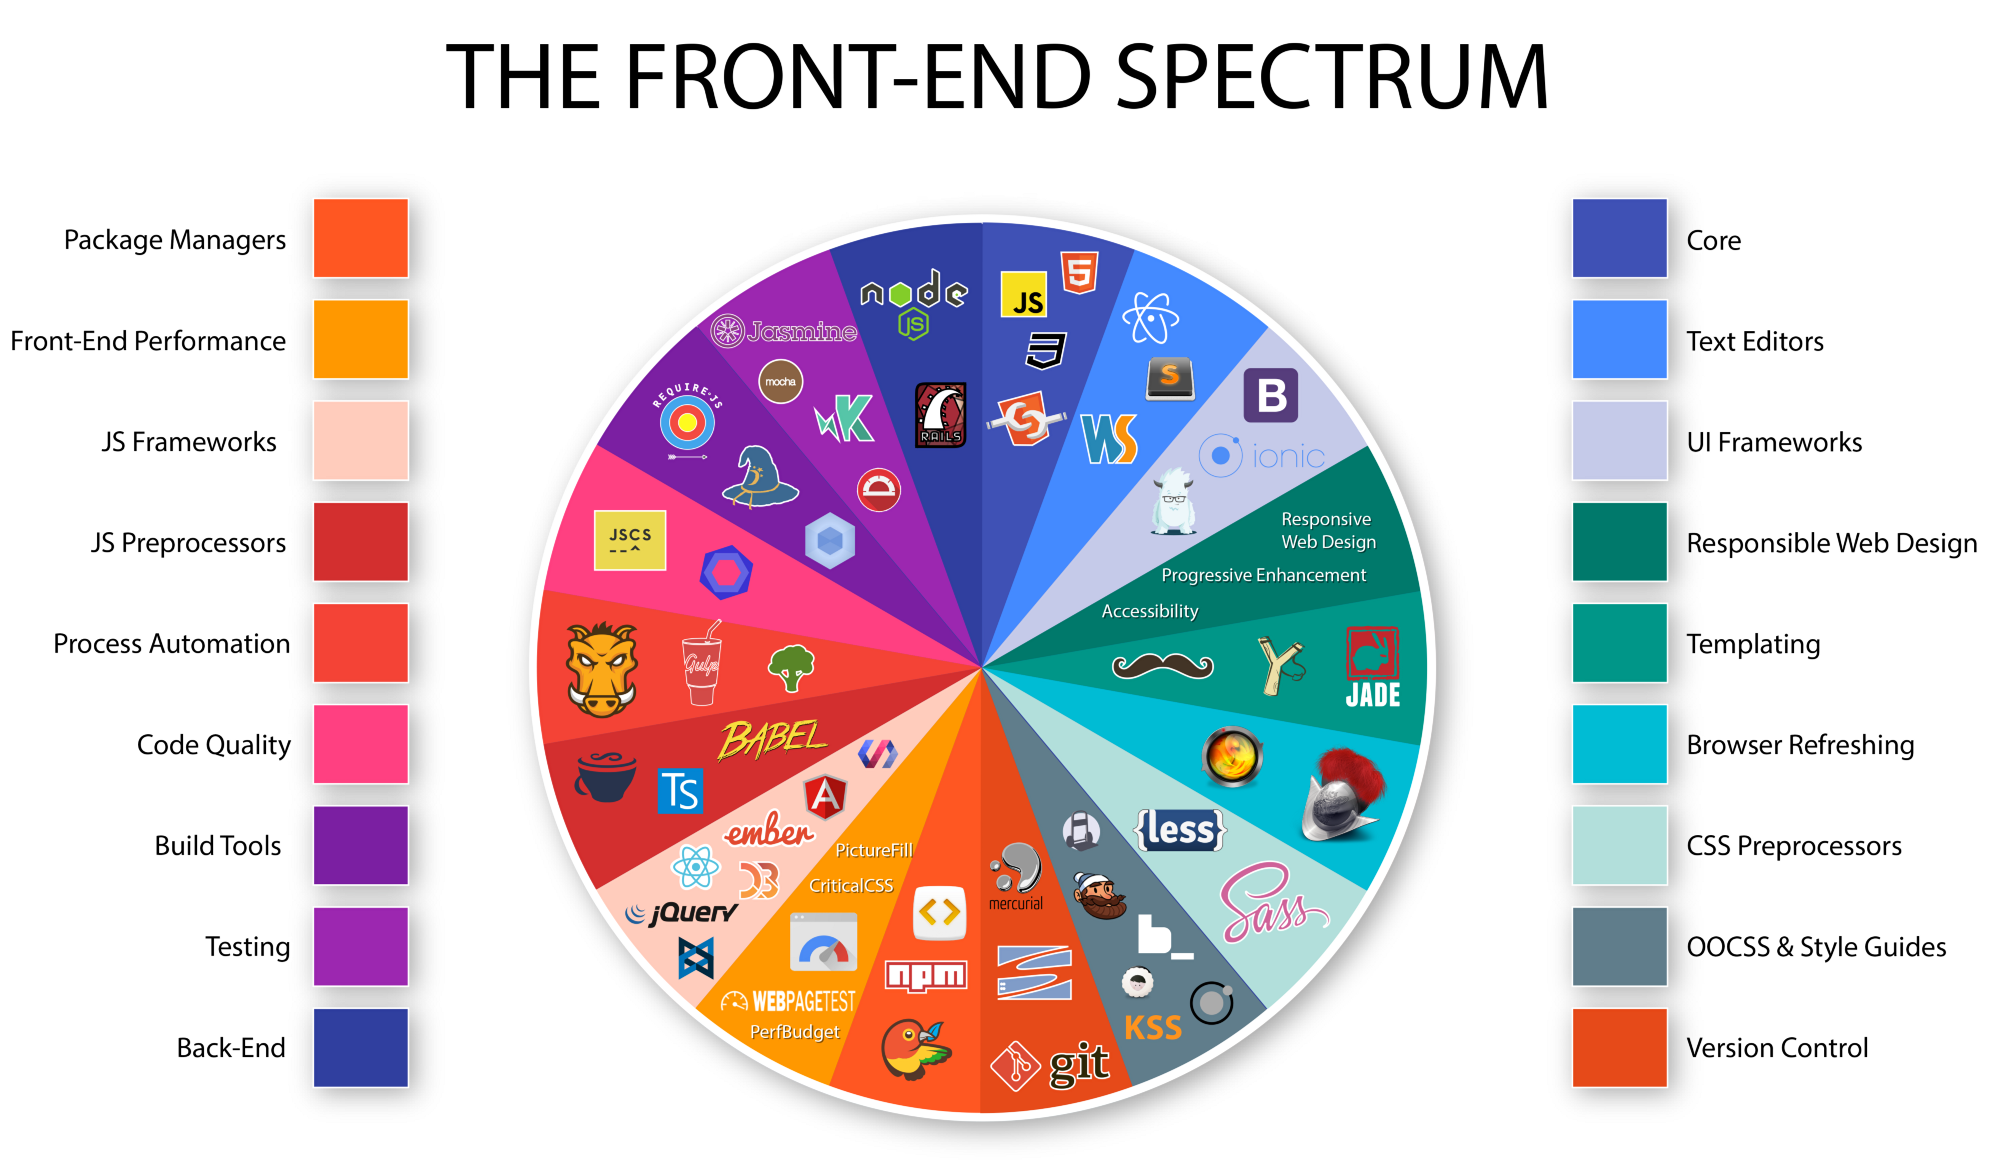 the front-end spectrum